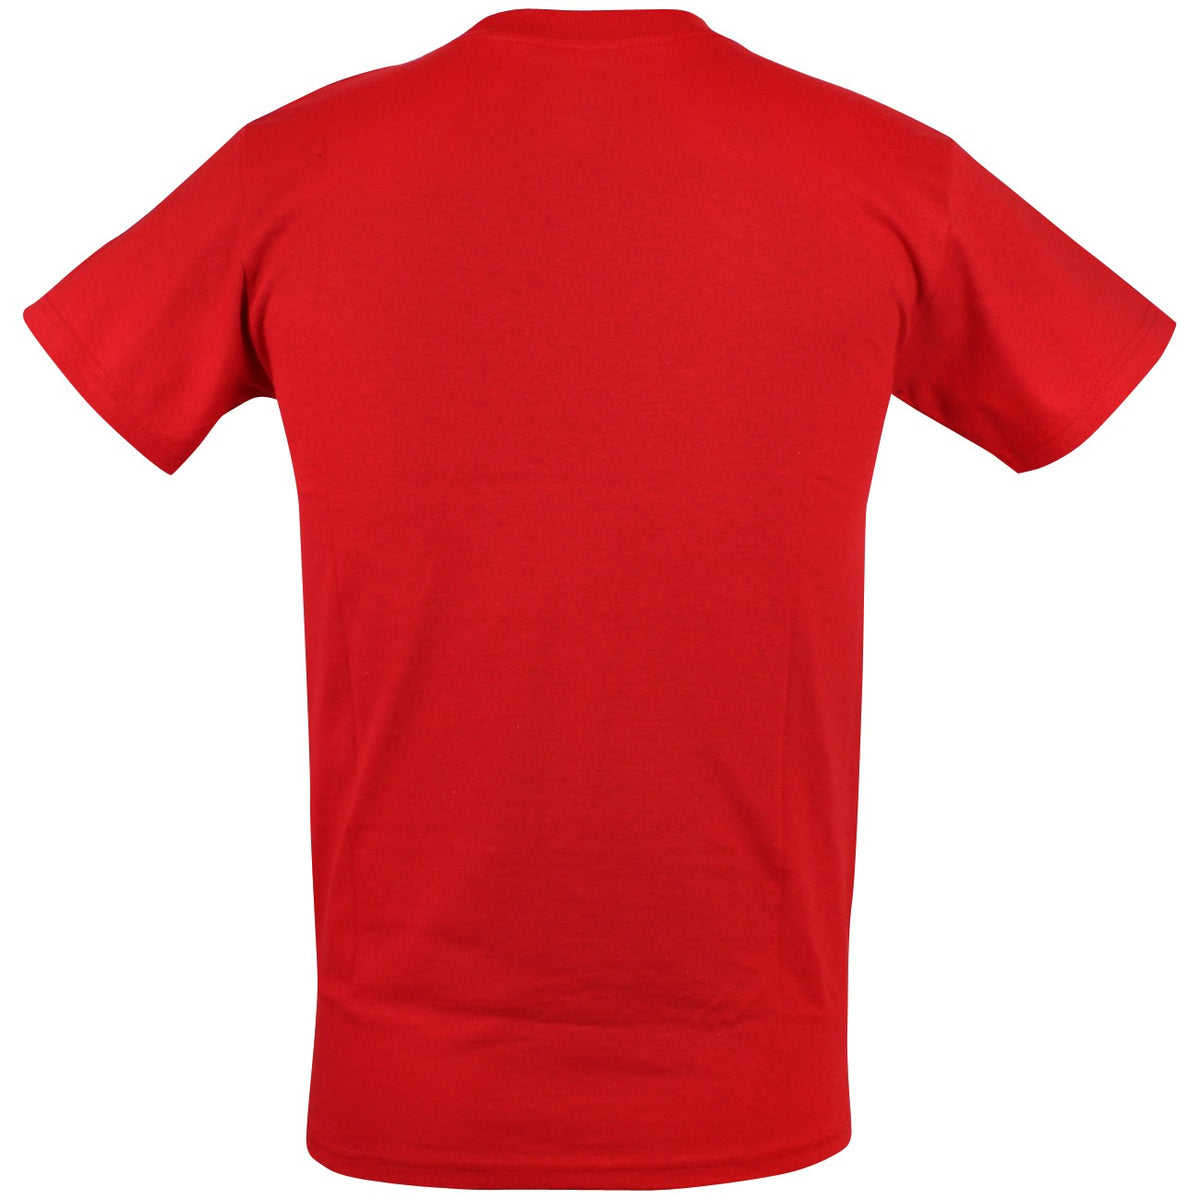 huge selection of b0aad 0f45f Nike Air Jordan Jumpman 23 AJ Flight Retro Short Sleeve T-Shirt Gym Red  AA5603-687